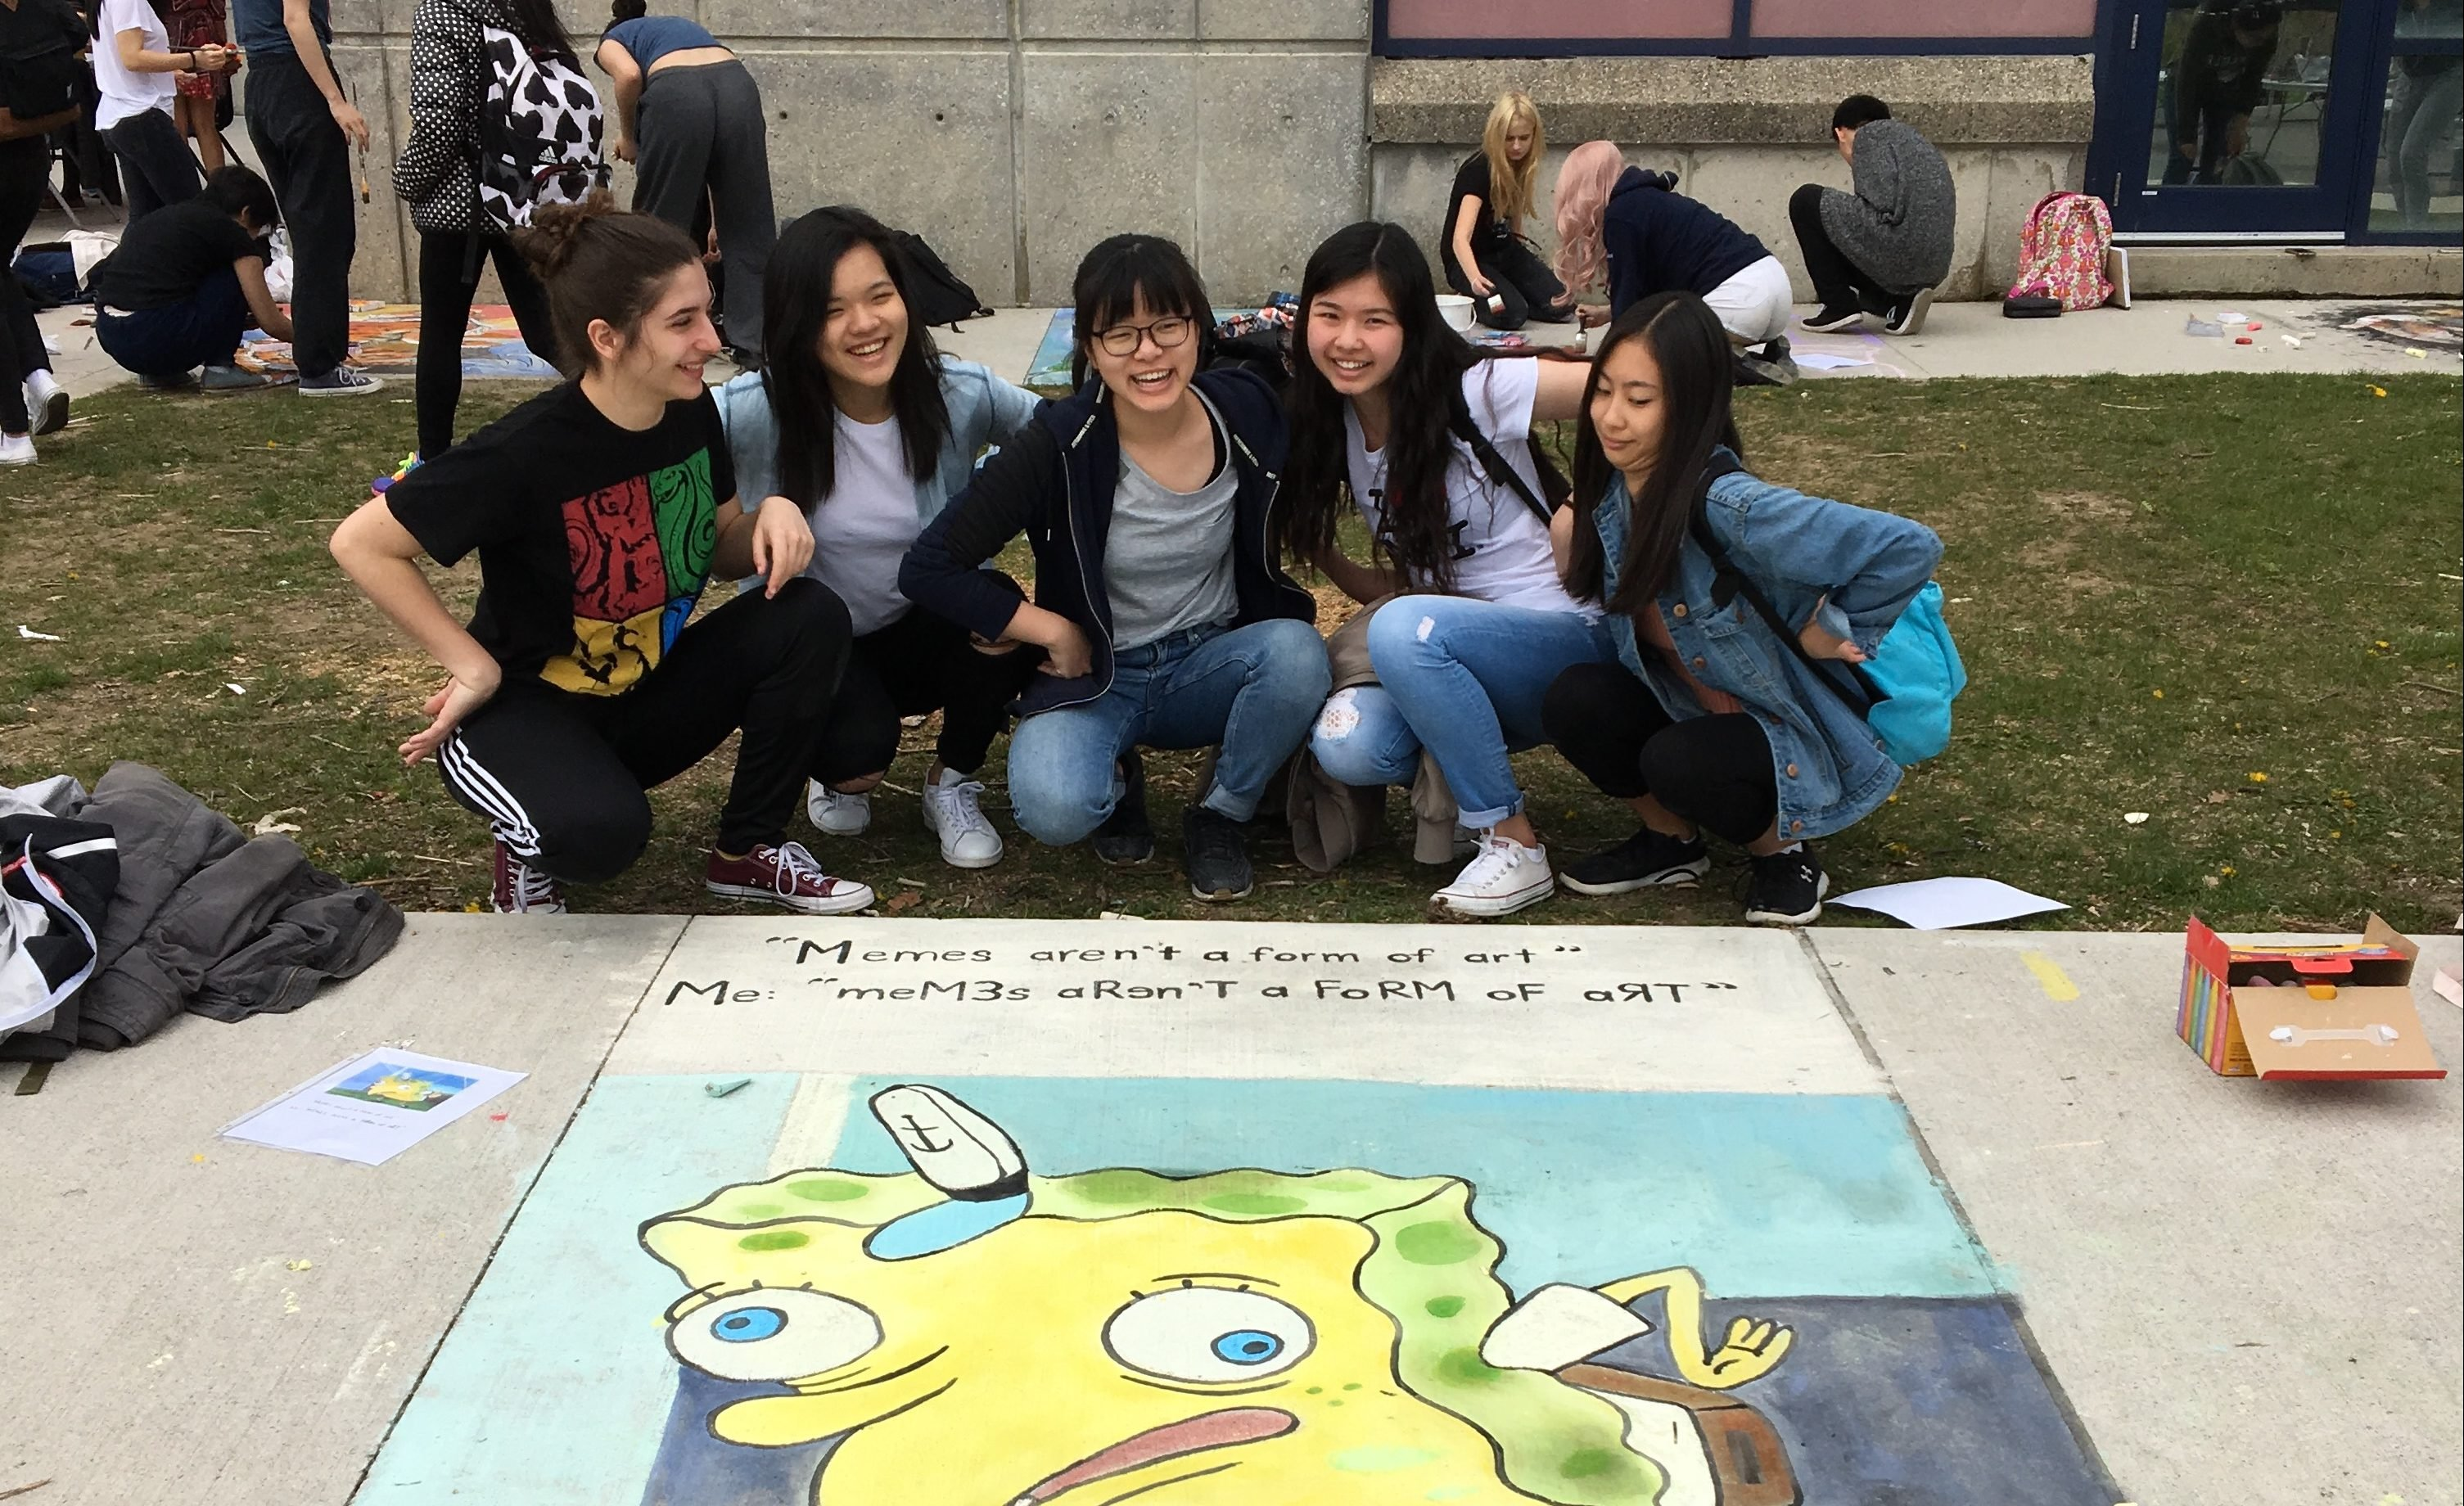 These high school students were told memes werent art so they entered an art contest using one